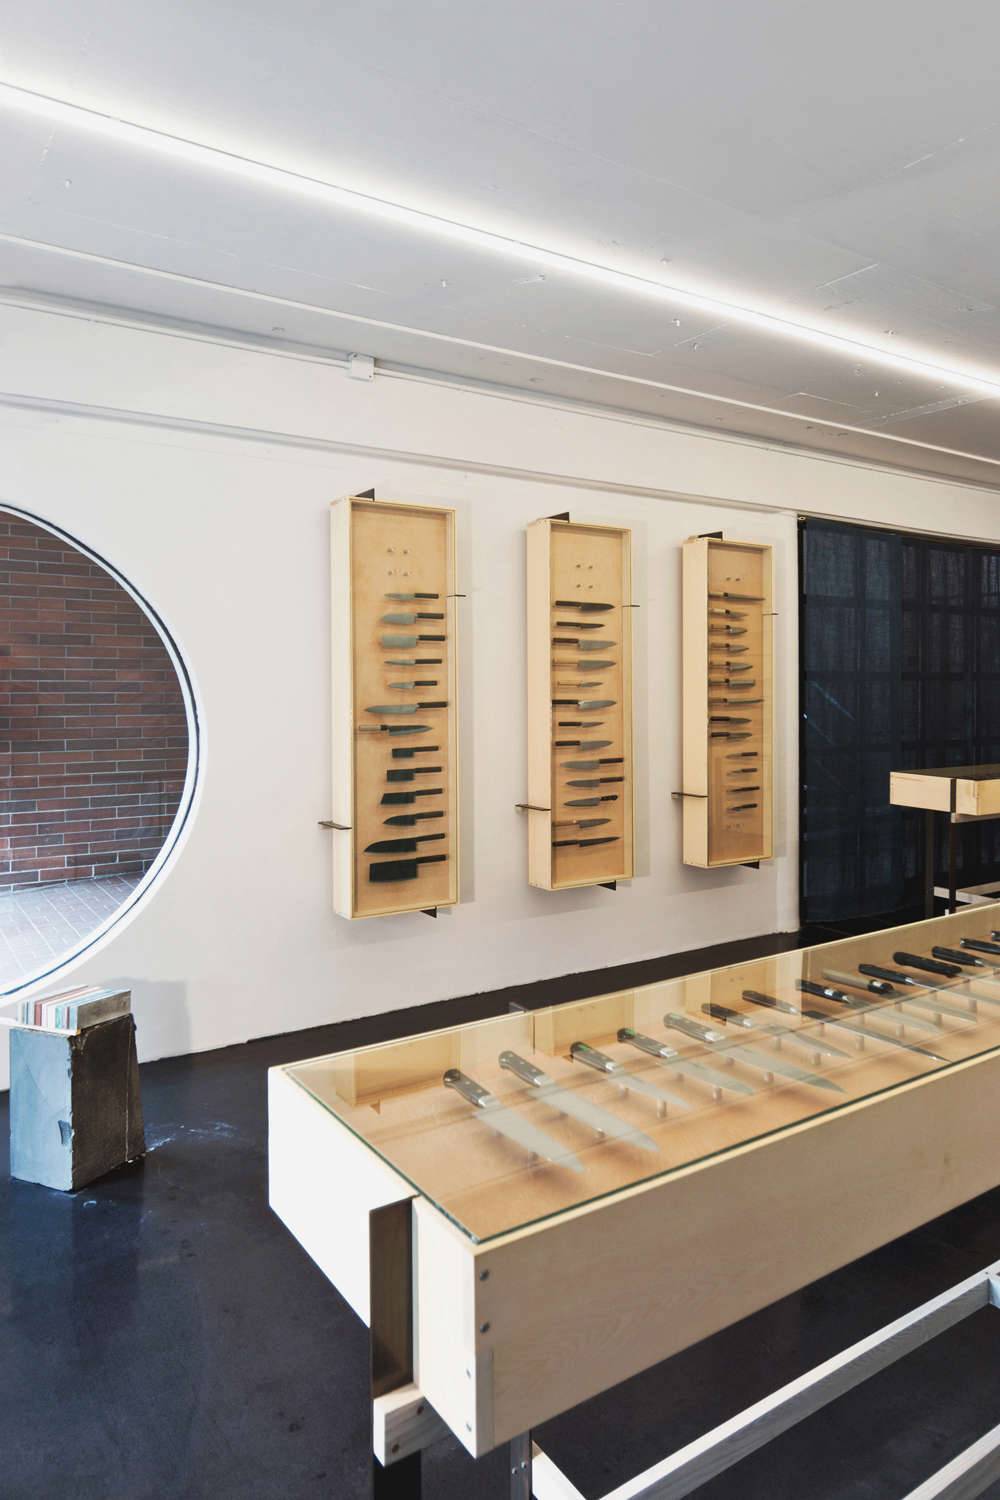 Display Cases in Ai and Om Knife Shop by Scott and Scott Architects